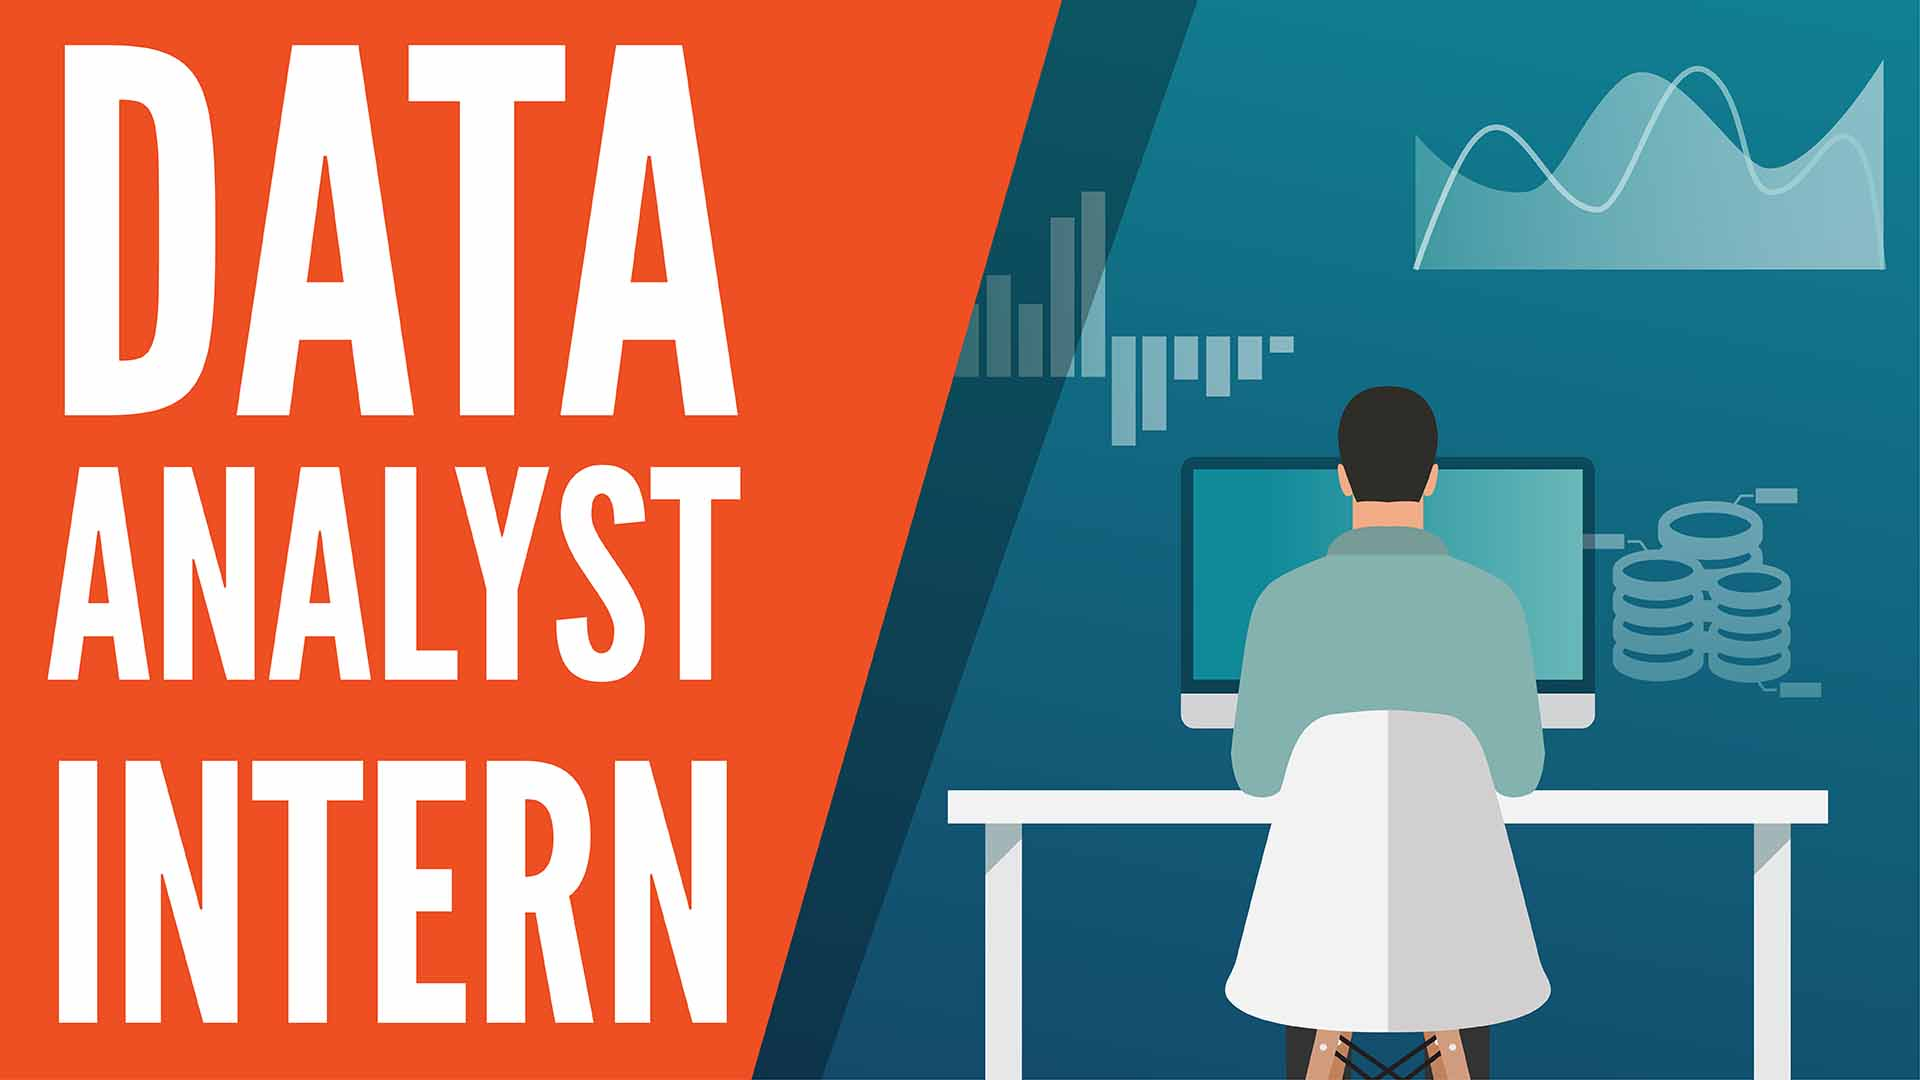 How to become a data analyst intern